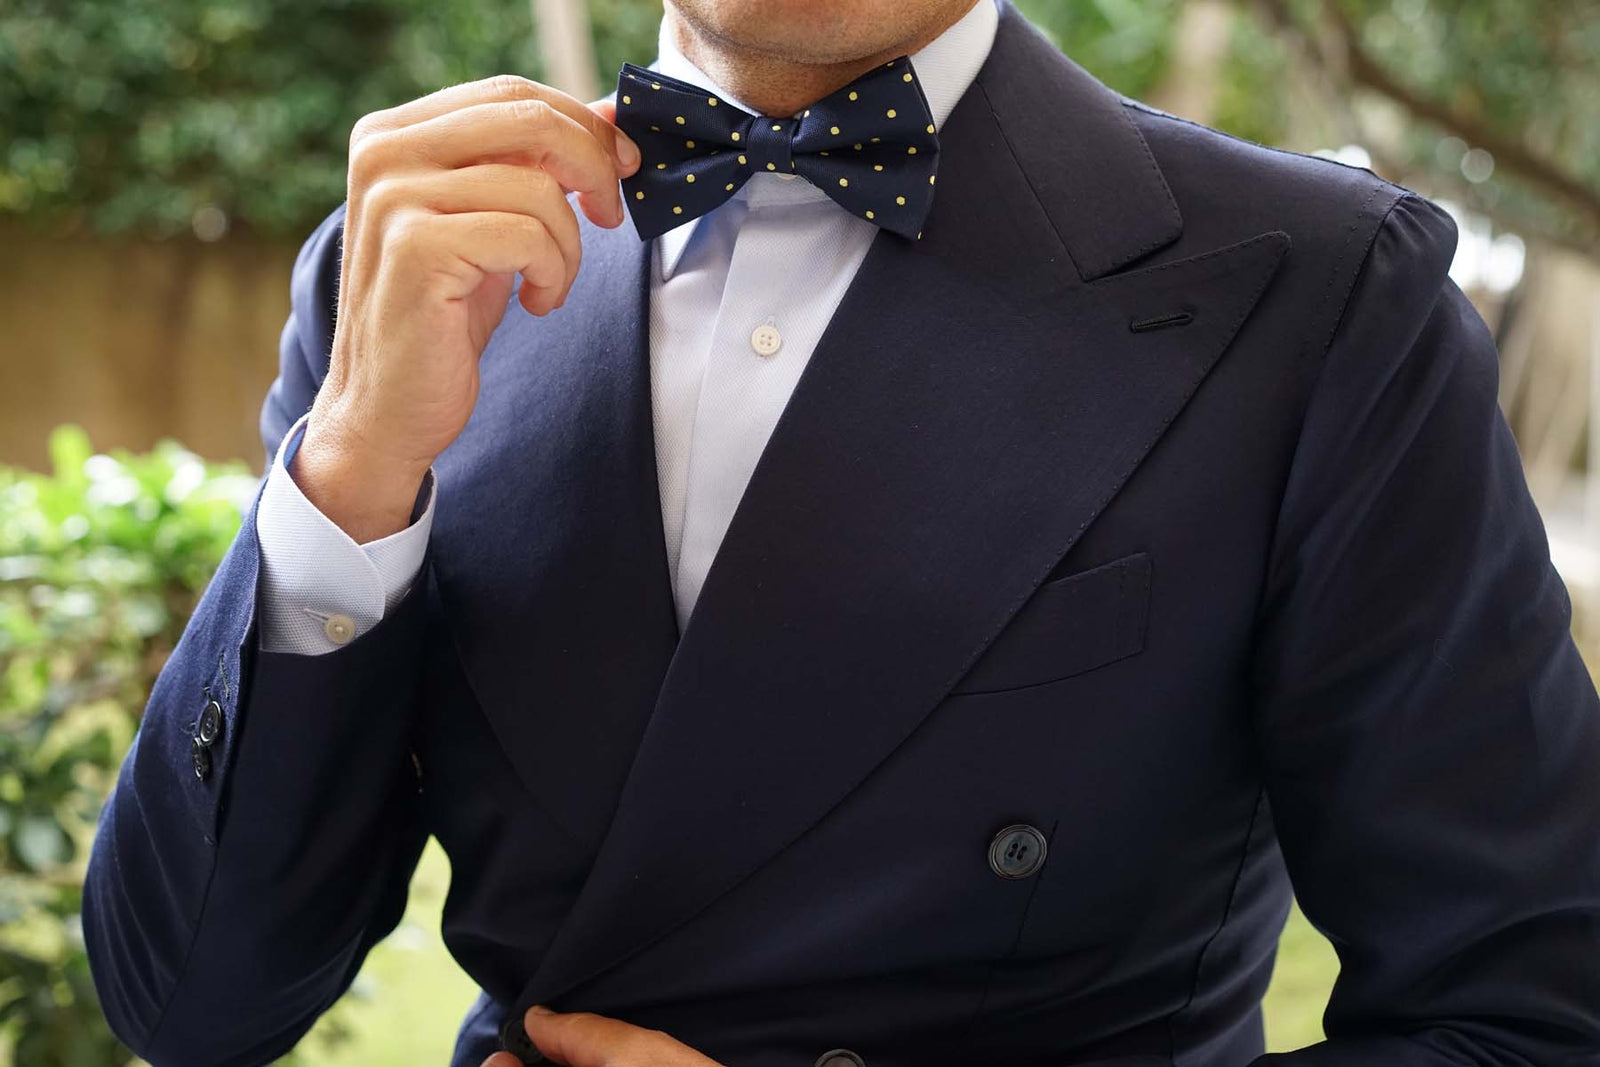 Navy Blue with Yellow Polka Dots Bow Tie